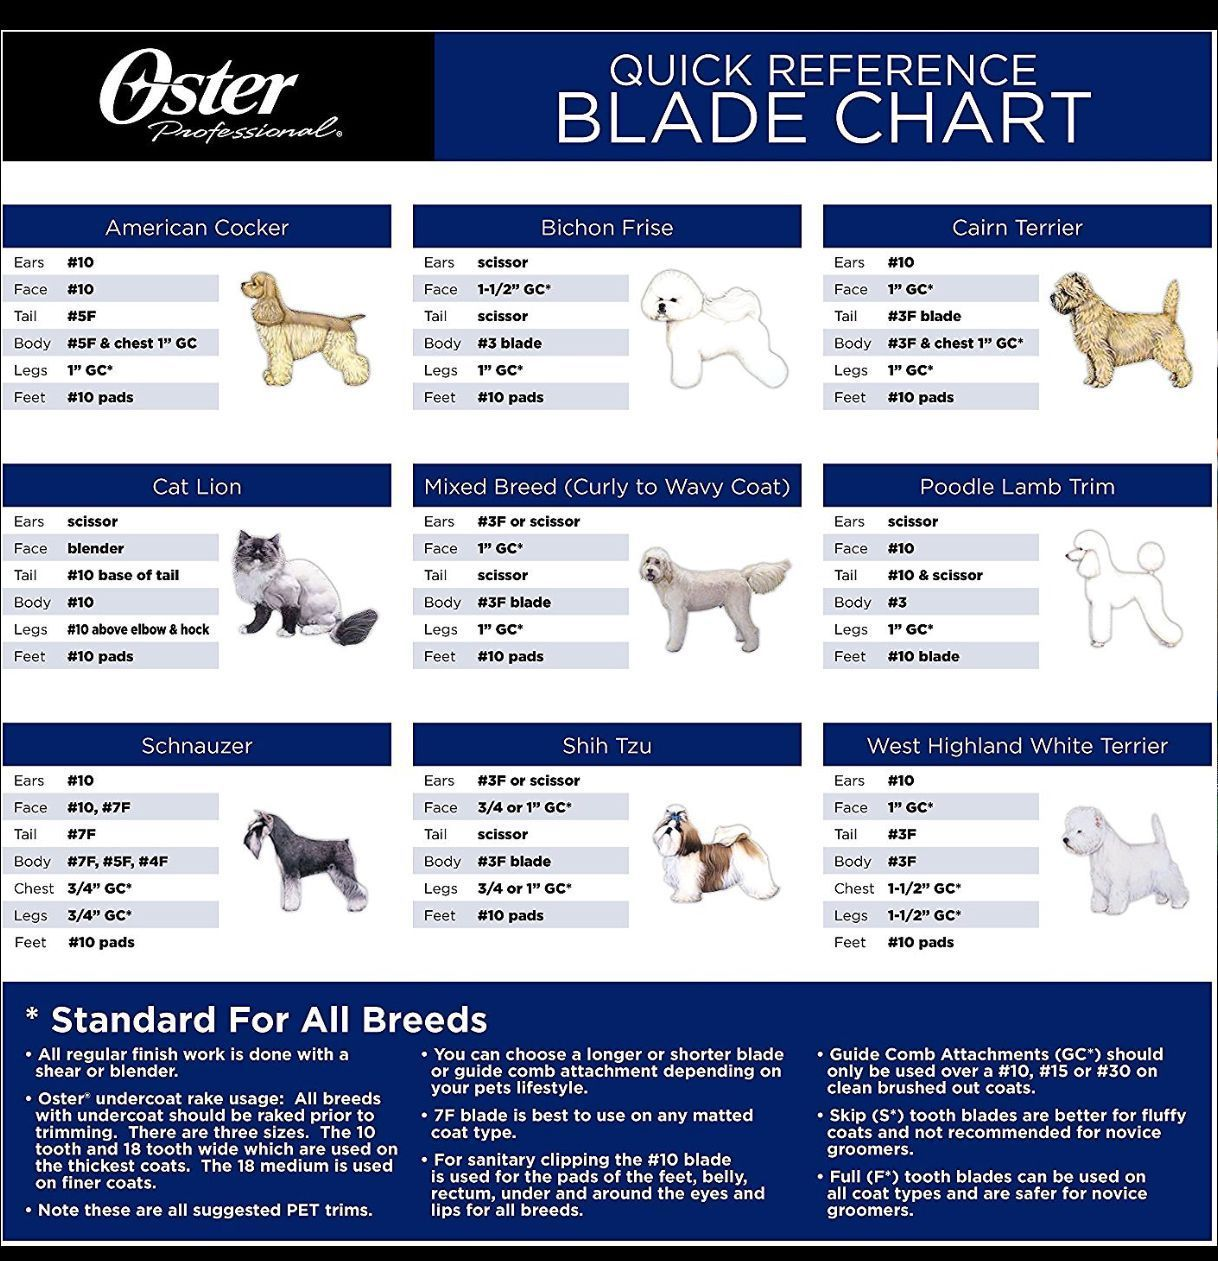 Catgroomingclippers Catgroomingstyles Dog Grooming Clippers Dog Grooming Styles Schnauzer Grooming